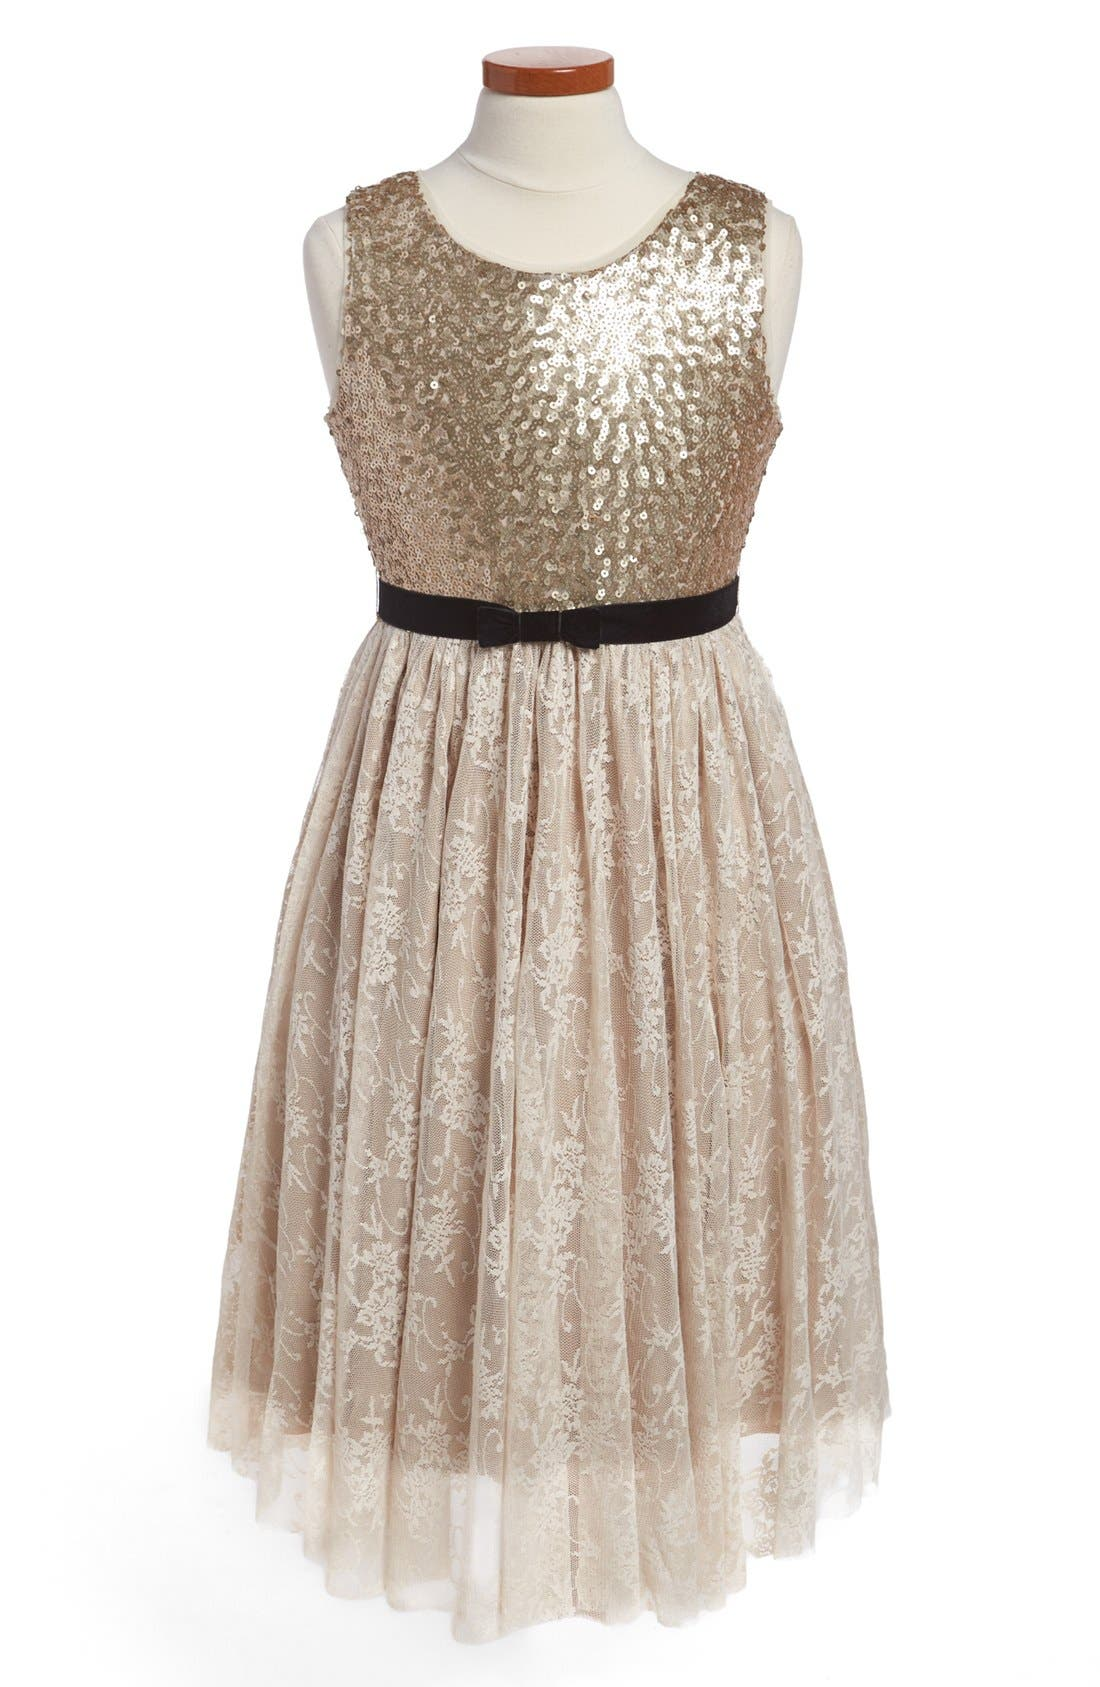 Alternate Image 1 Selected - Us Angels Sequin Dress (Little Girls & Big Girls)